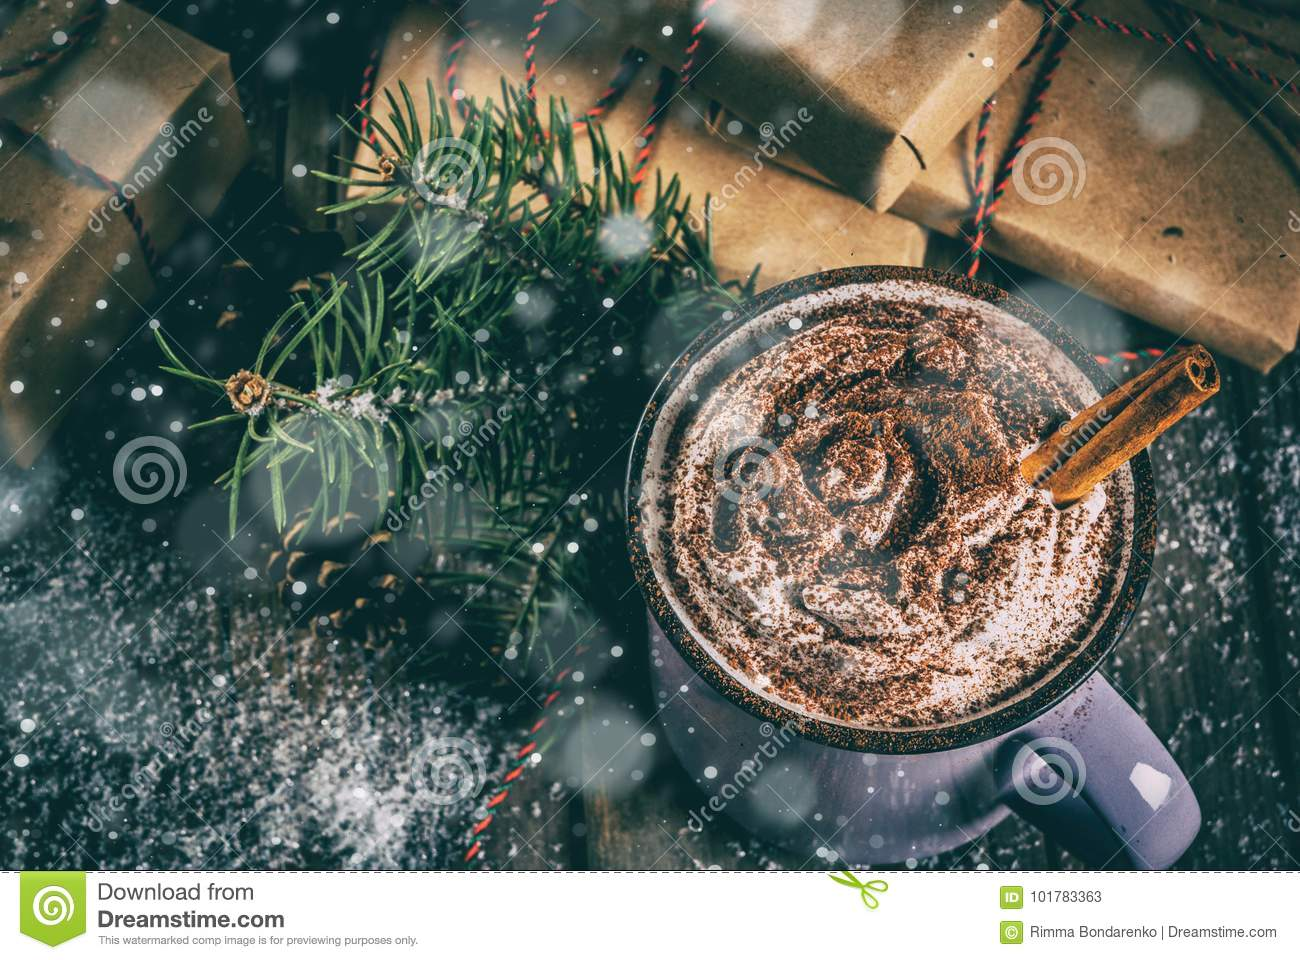 Hot Chocolate And Christmas Gifts Stock Image - Image of foam ...